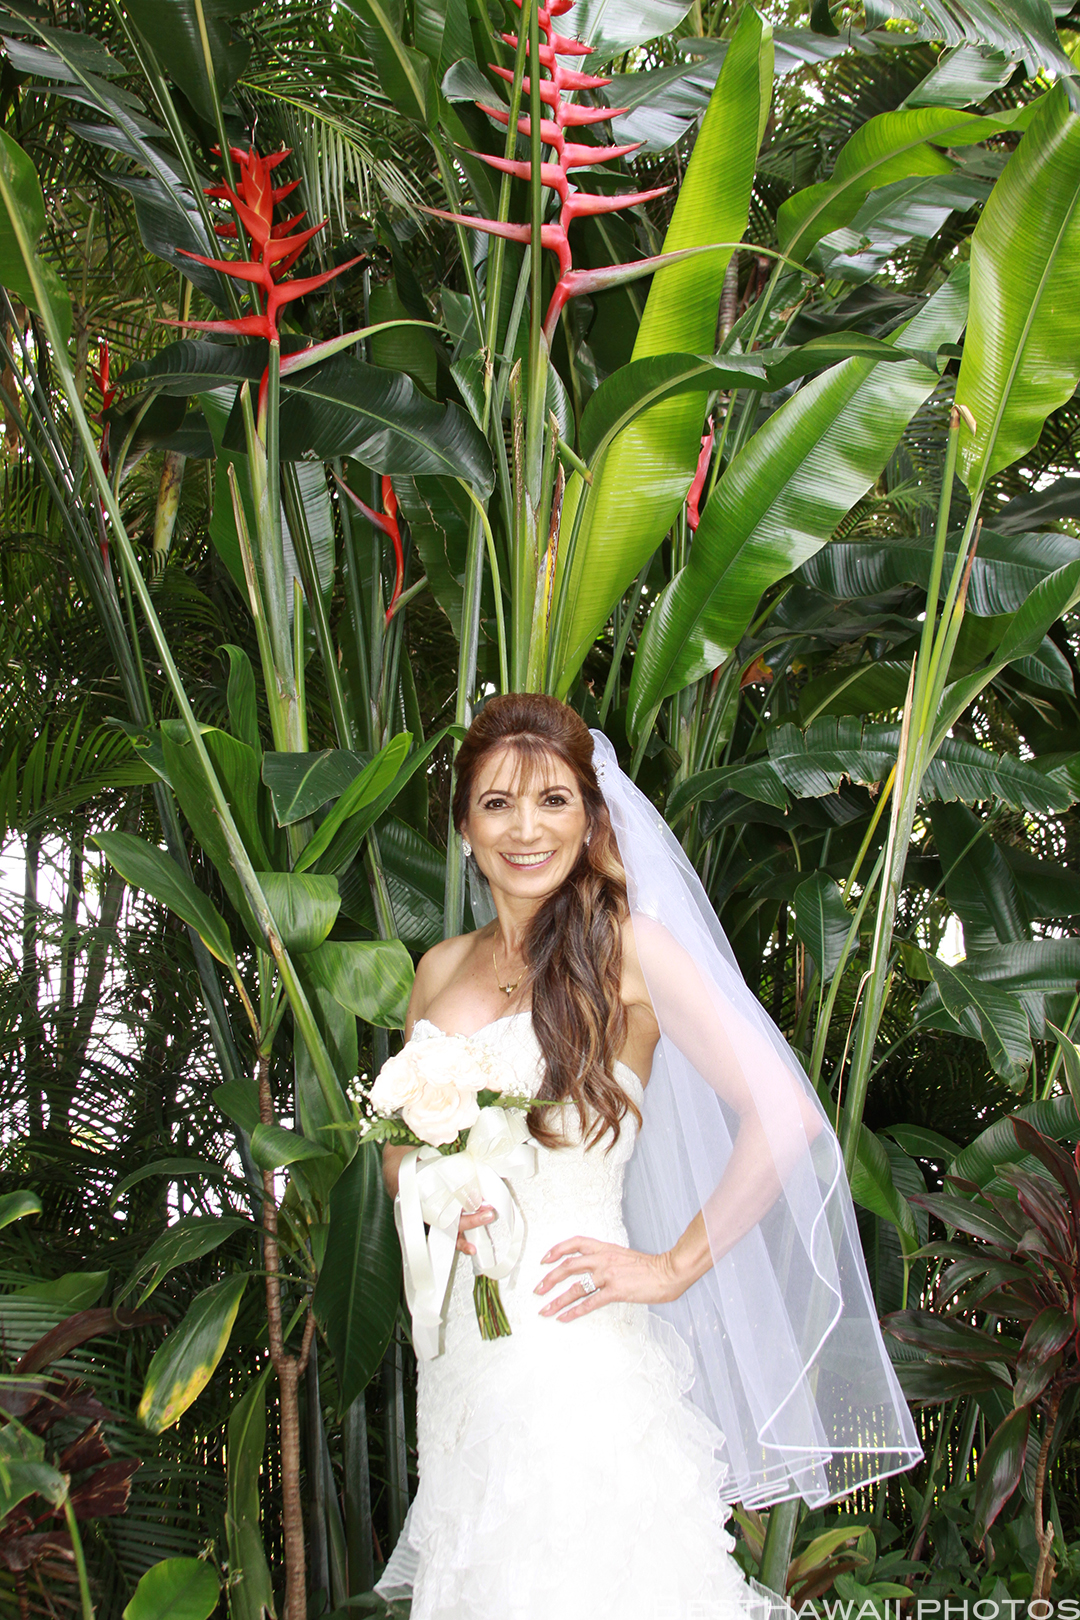 Wedding at Hale Koa Hotel by Pasha www.BestHawaii.photos 121820158508